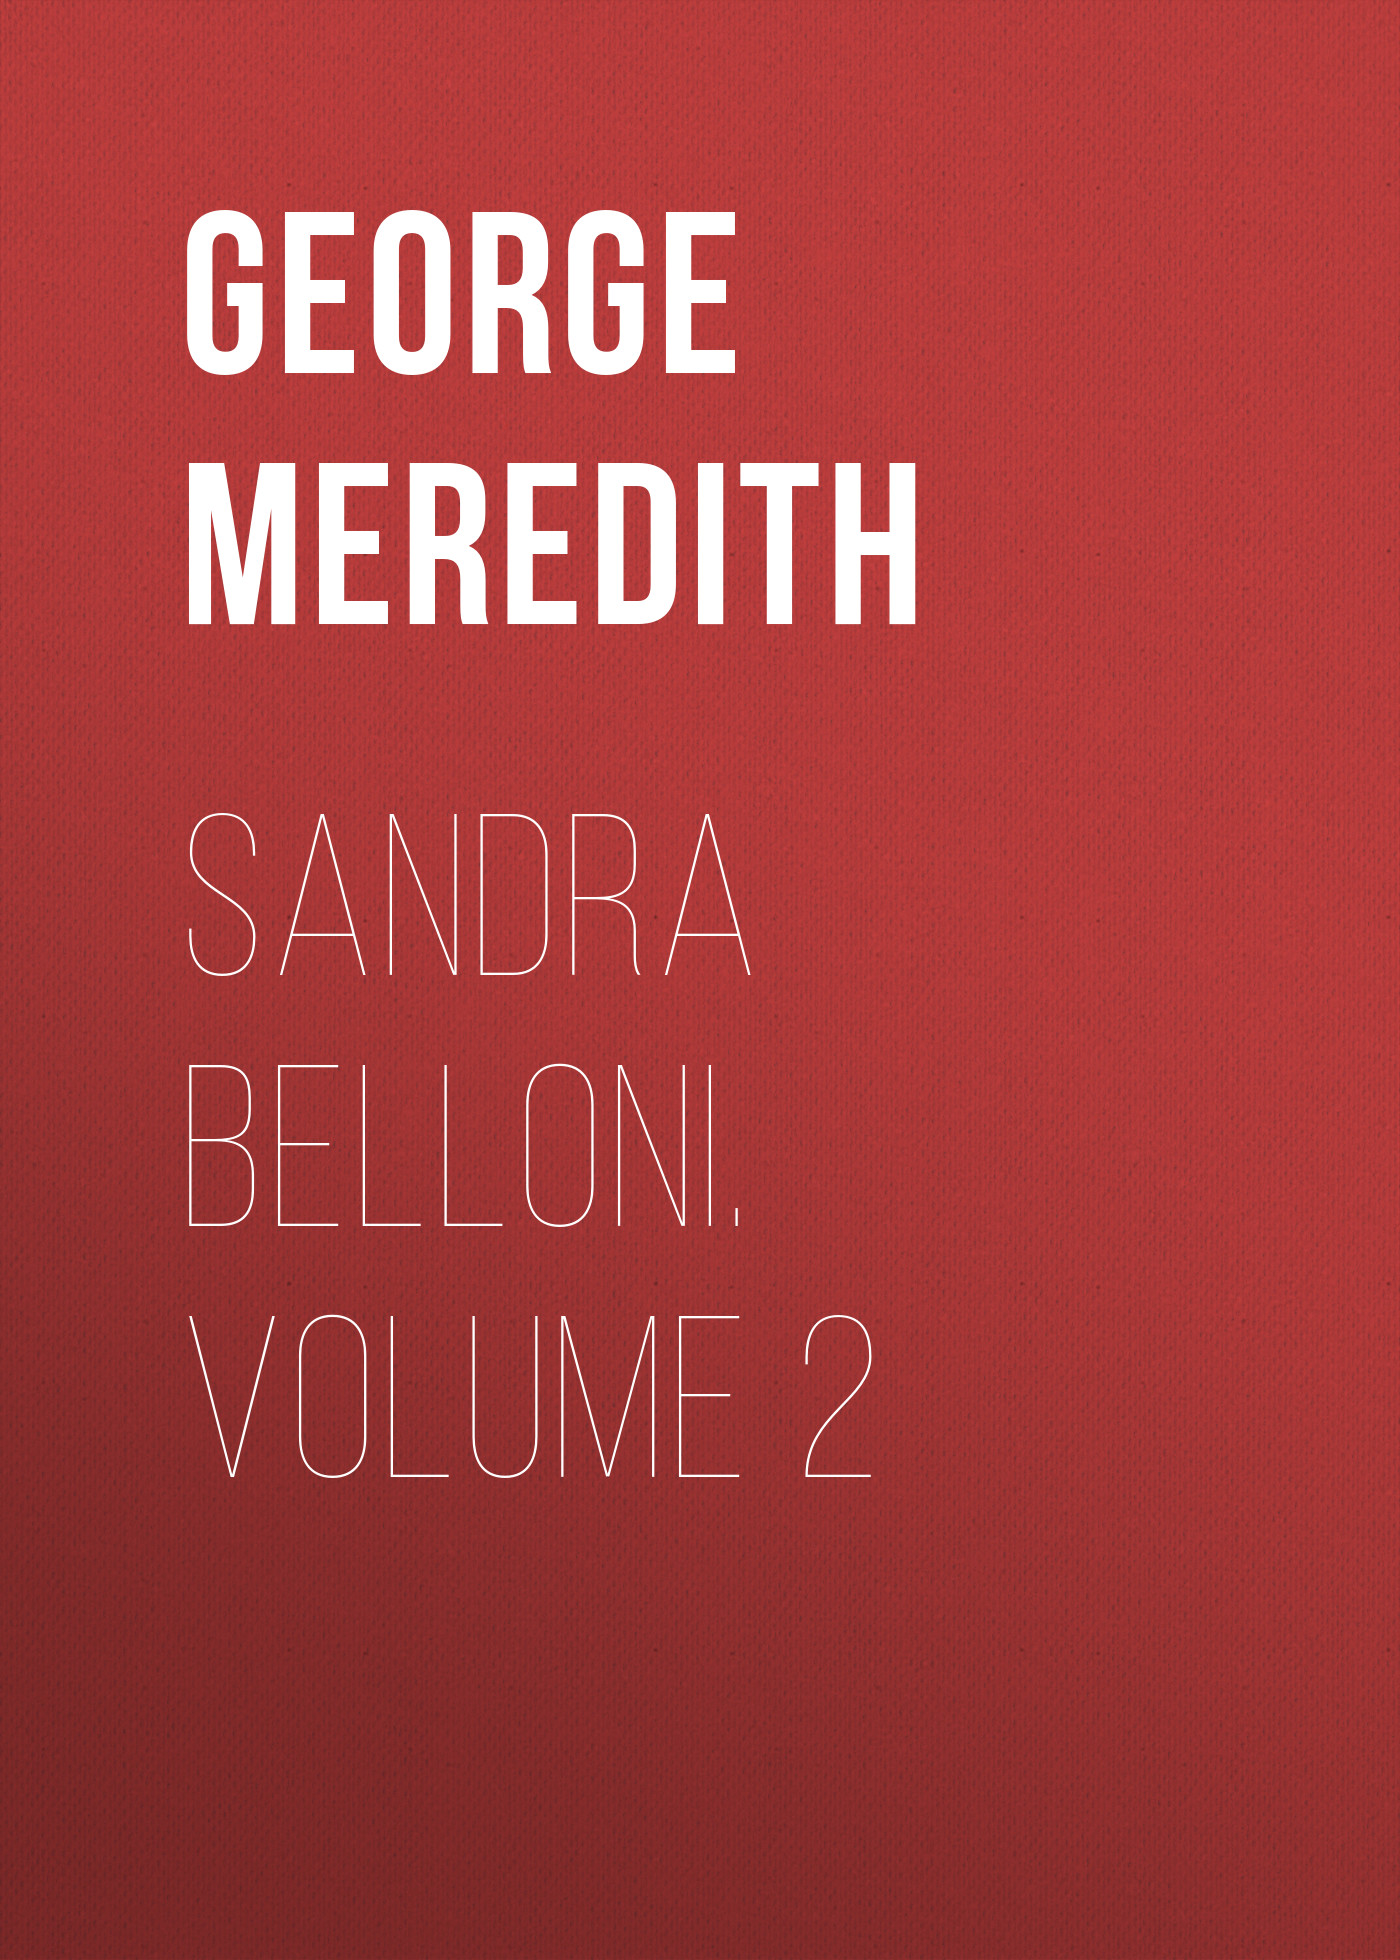 Sandra Belloni. Volume 2